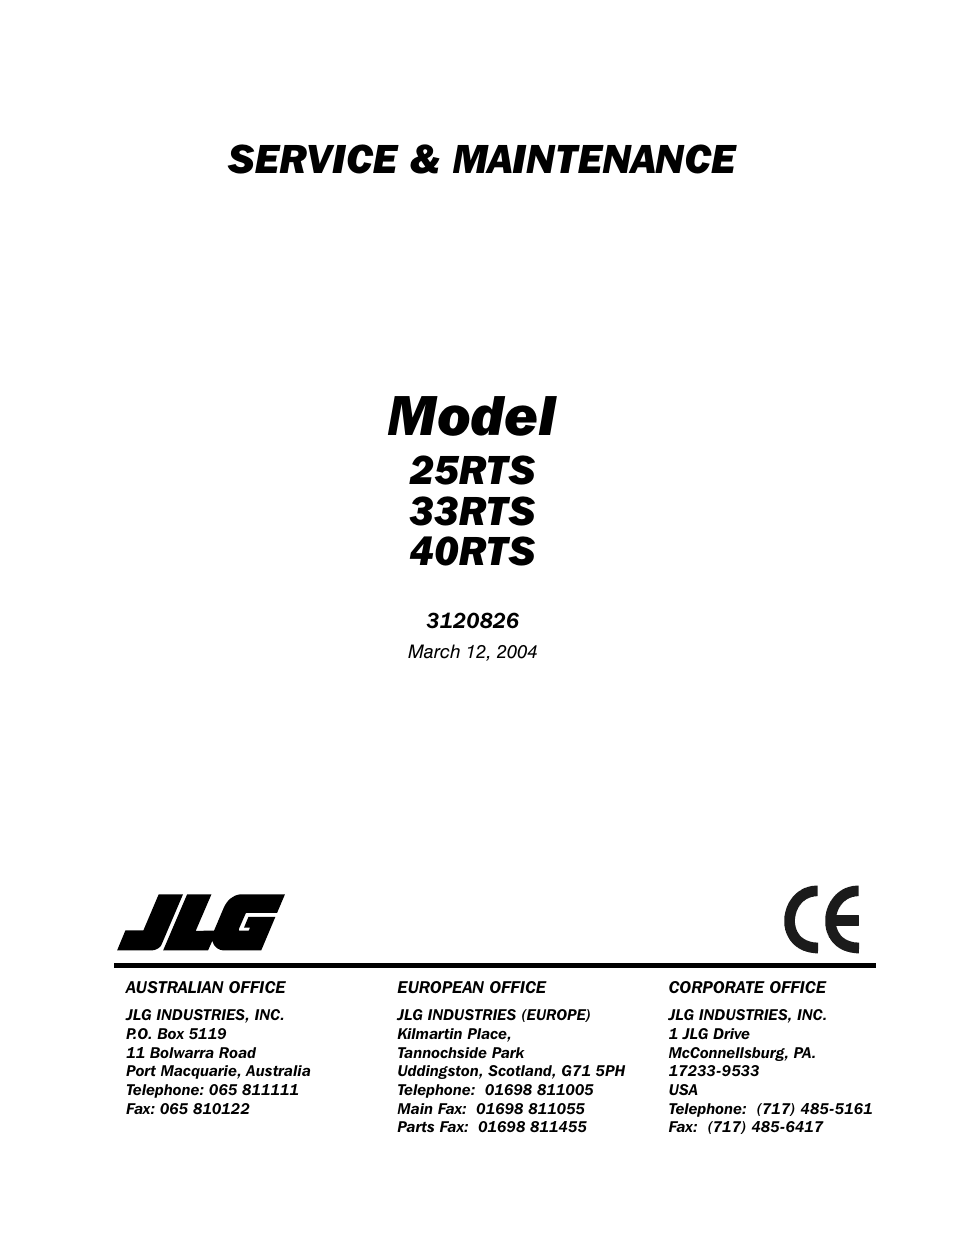 Jlg 3246es Wiring Diagram Electrical E300ajp 40 21 Images 2032es